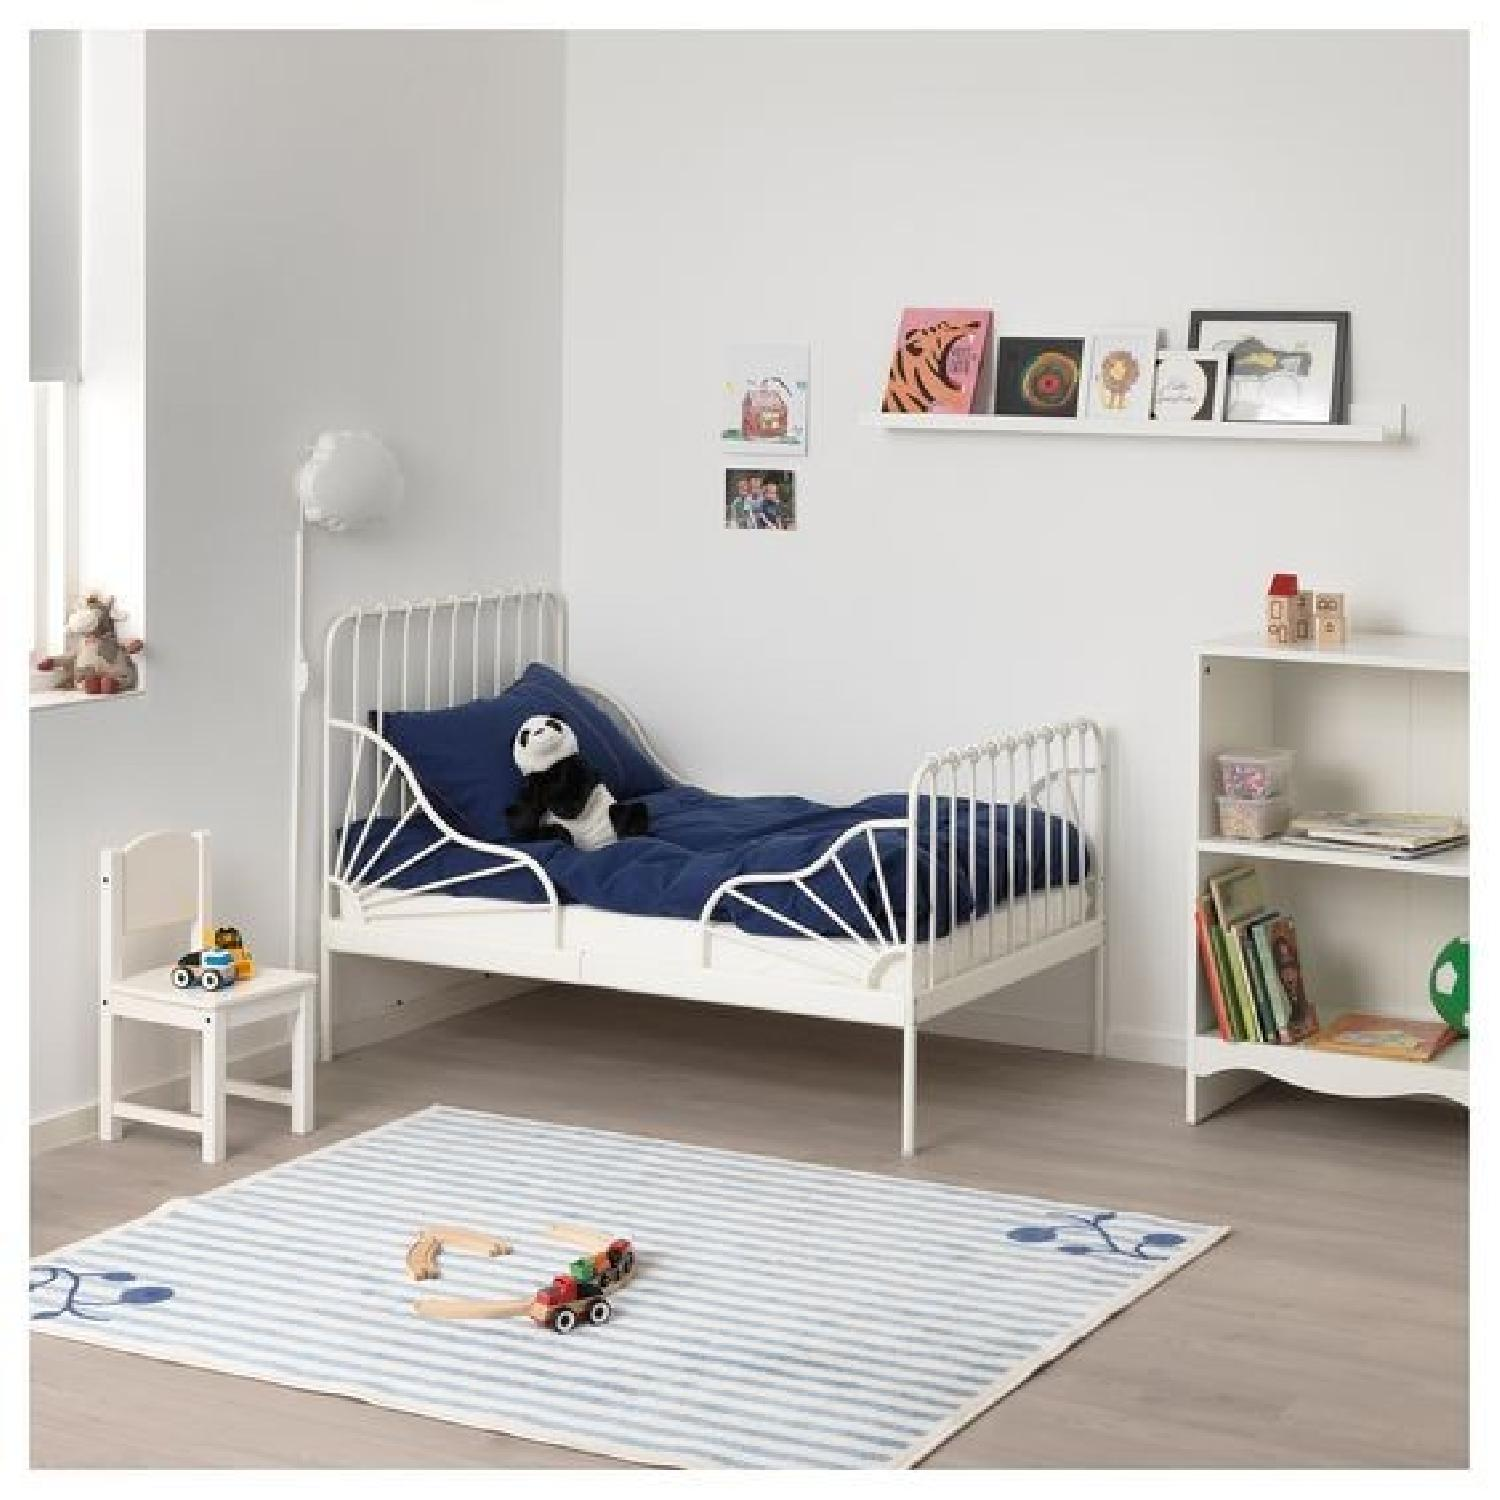 Ikea Minnen White Expandable Bed w/ Slatted Bed Base-3